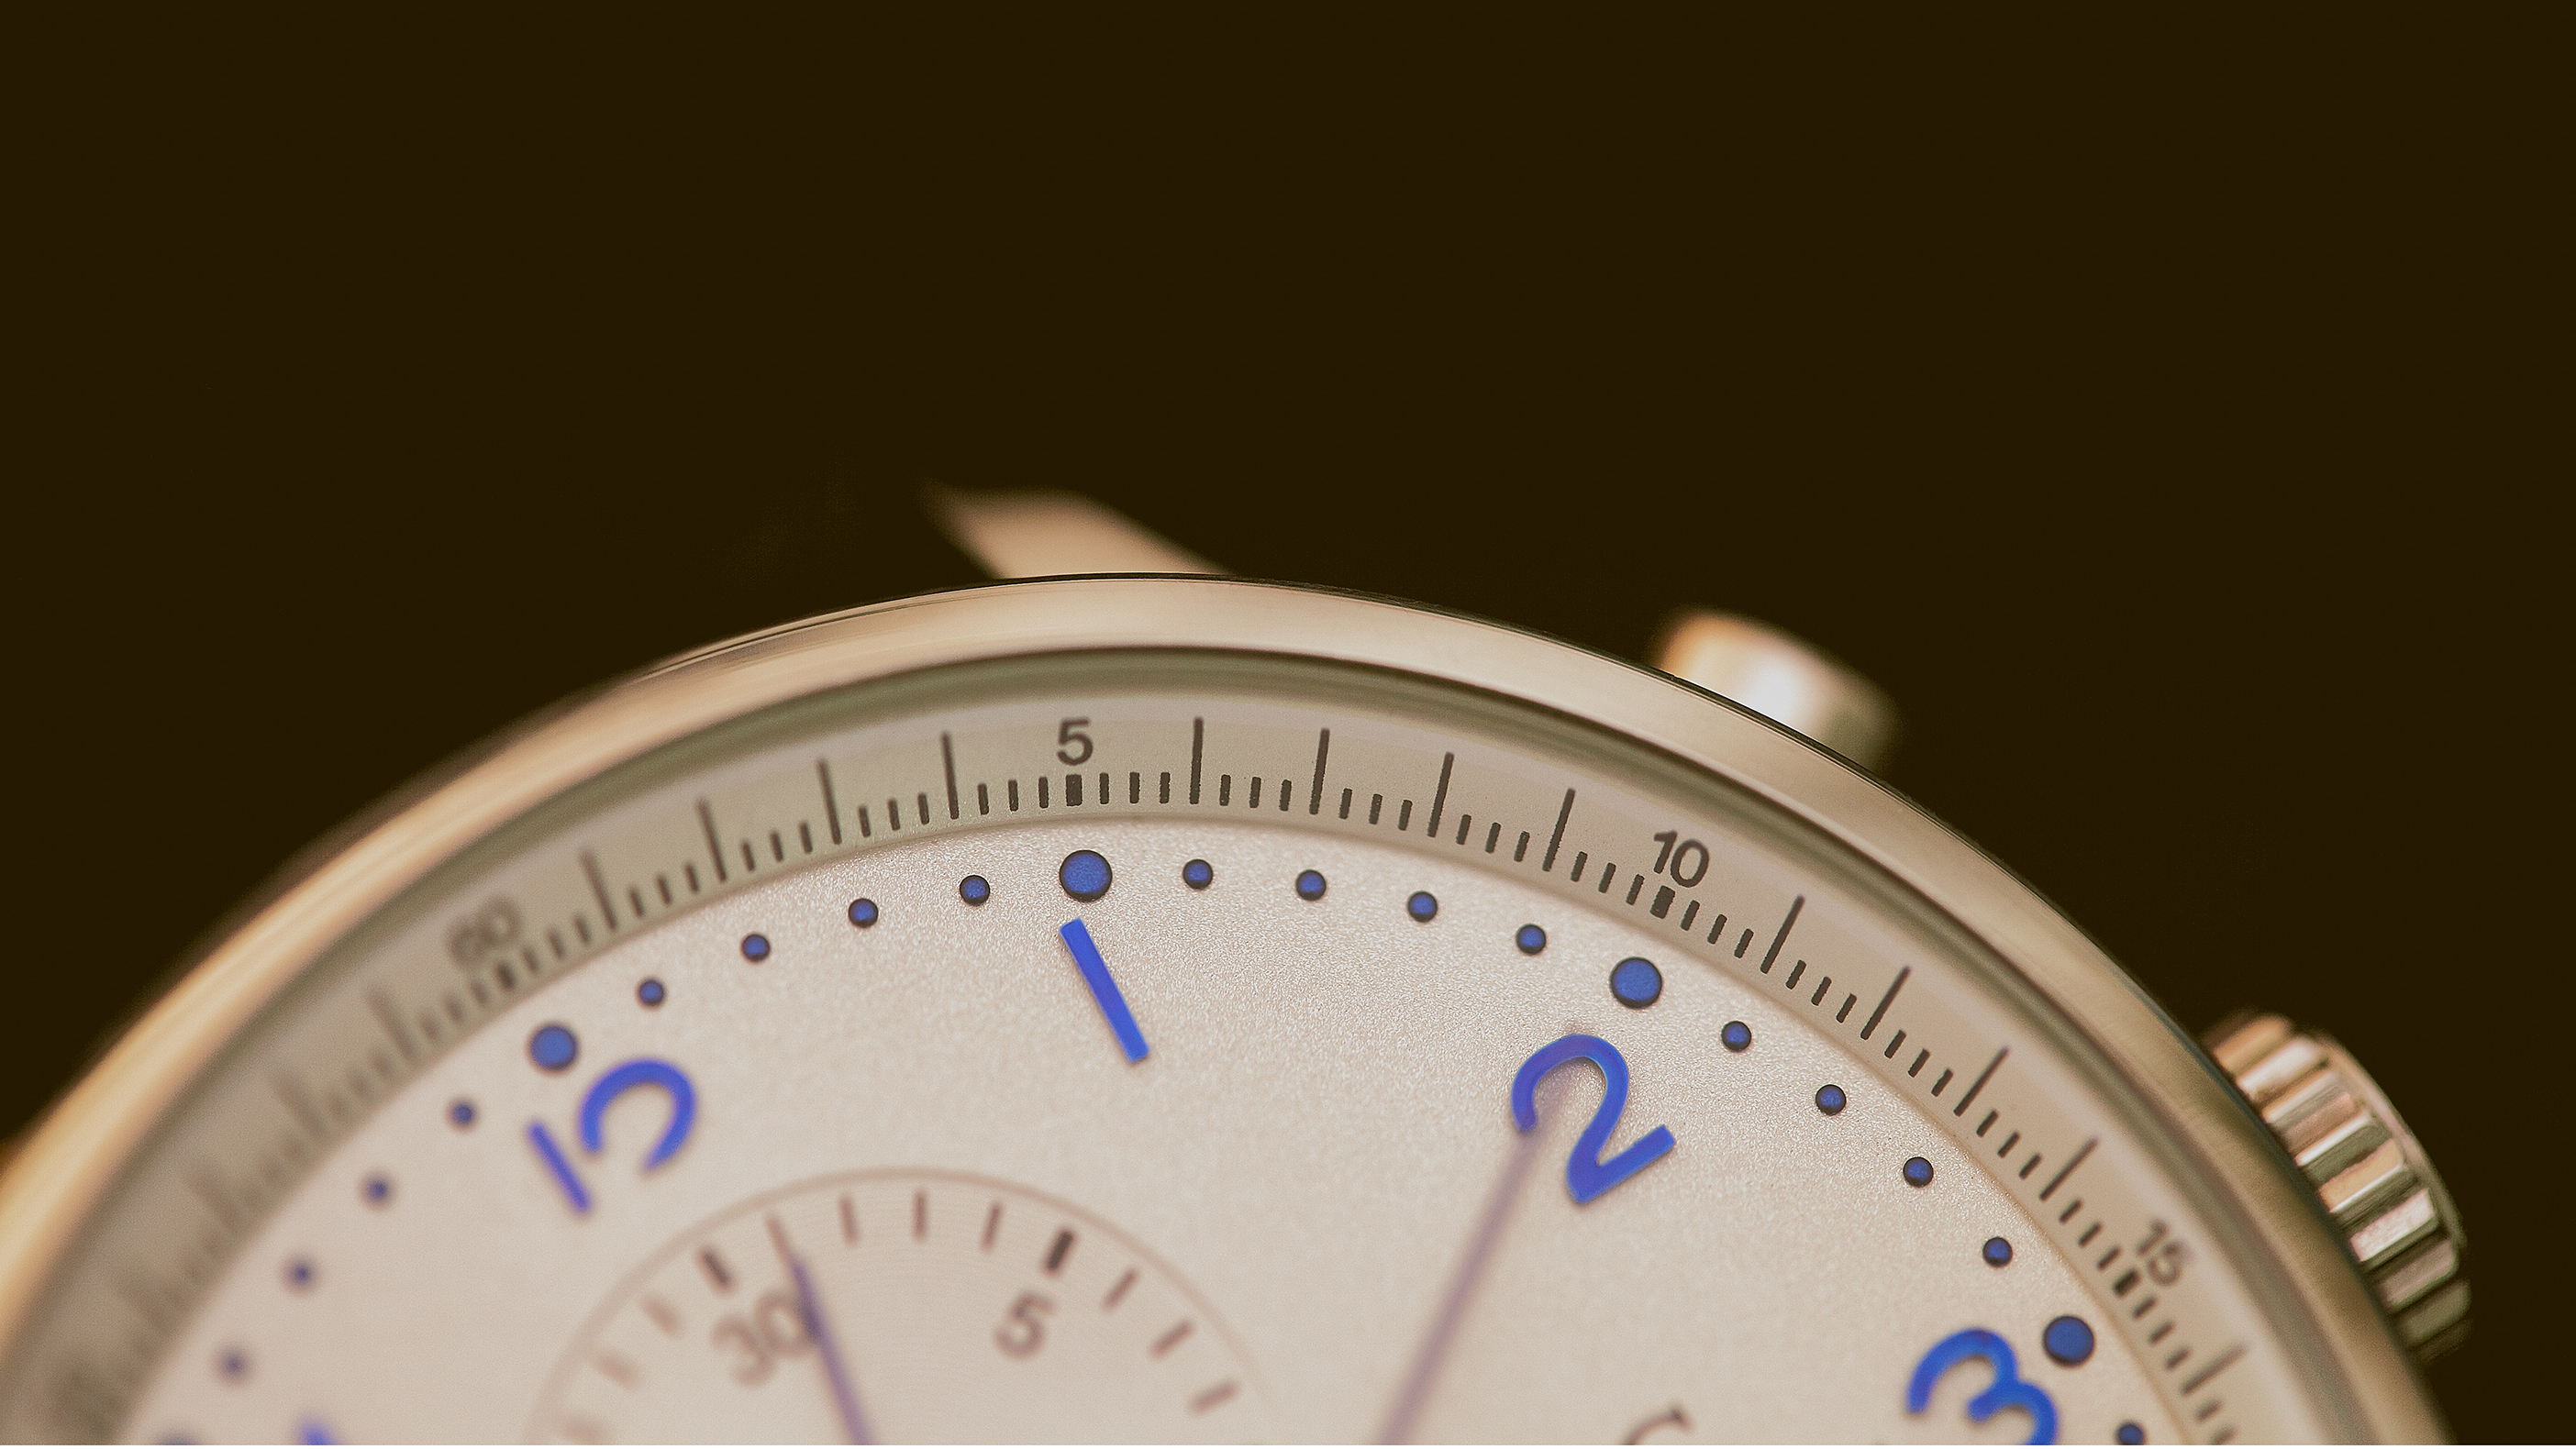 5G network timing and synchronization (T&S) challenges